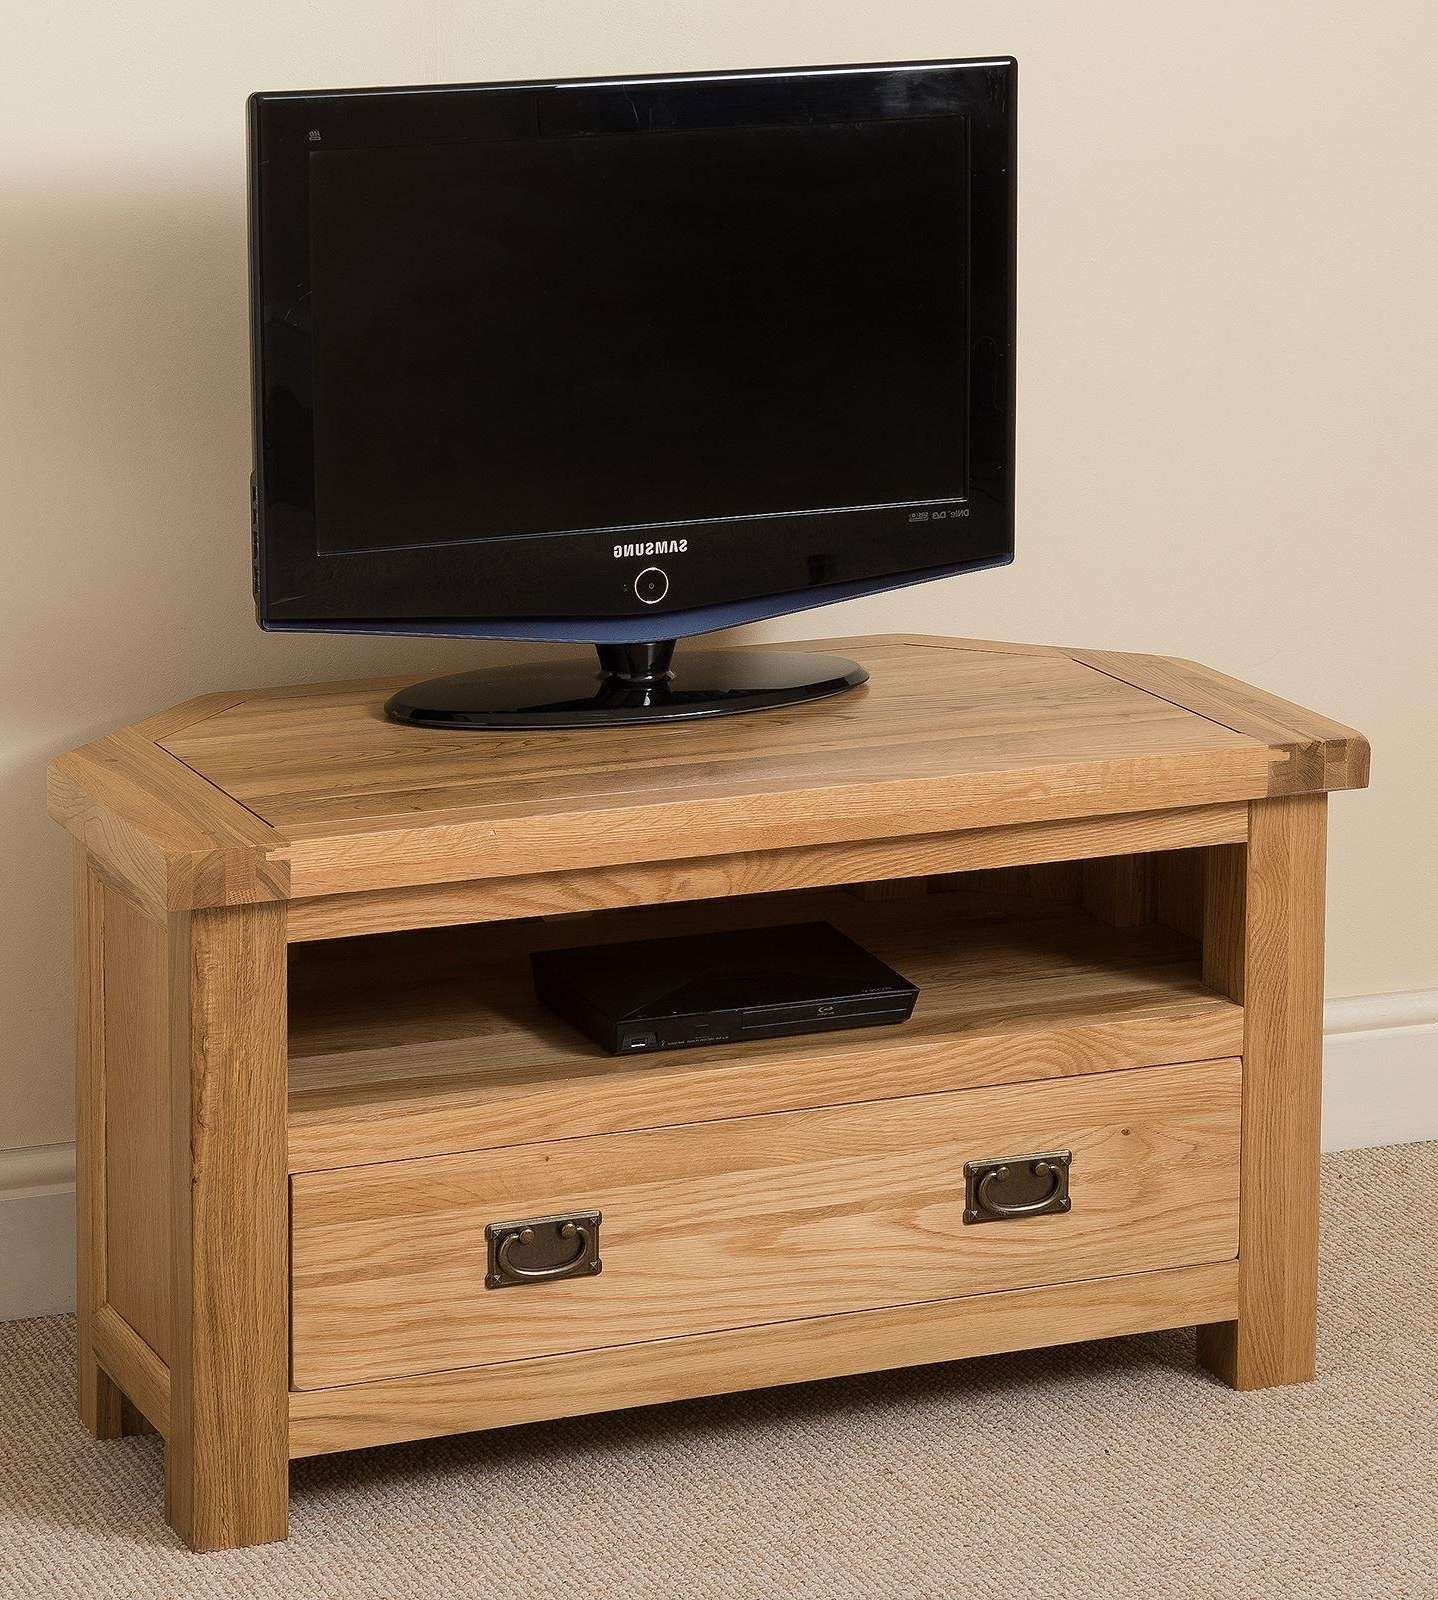 Kuba Solid Oak Corner Tv Cabinet • Corner Cabinets Intended For Light Oak Corner Tv Stands (View 14 of 20)